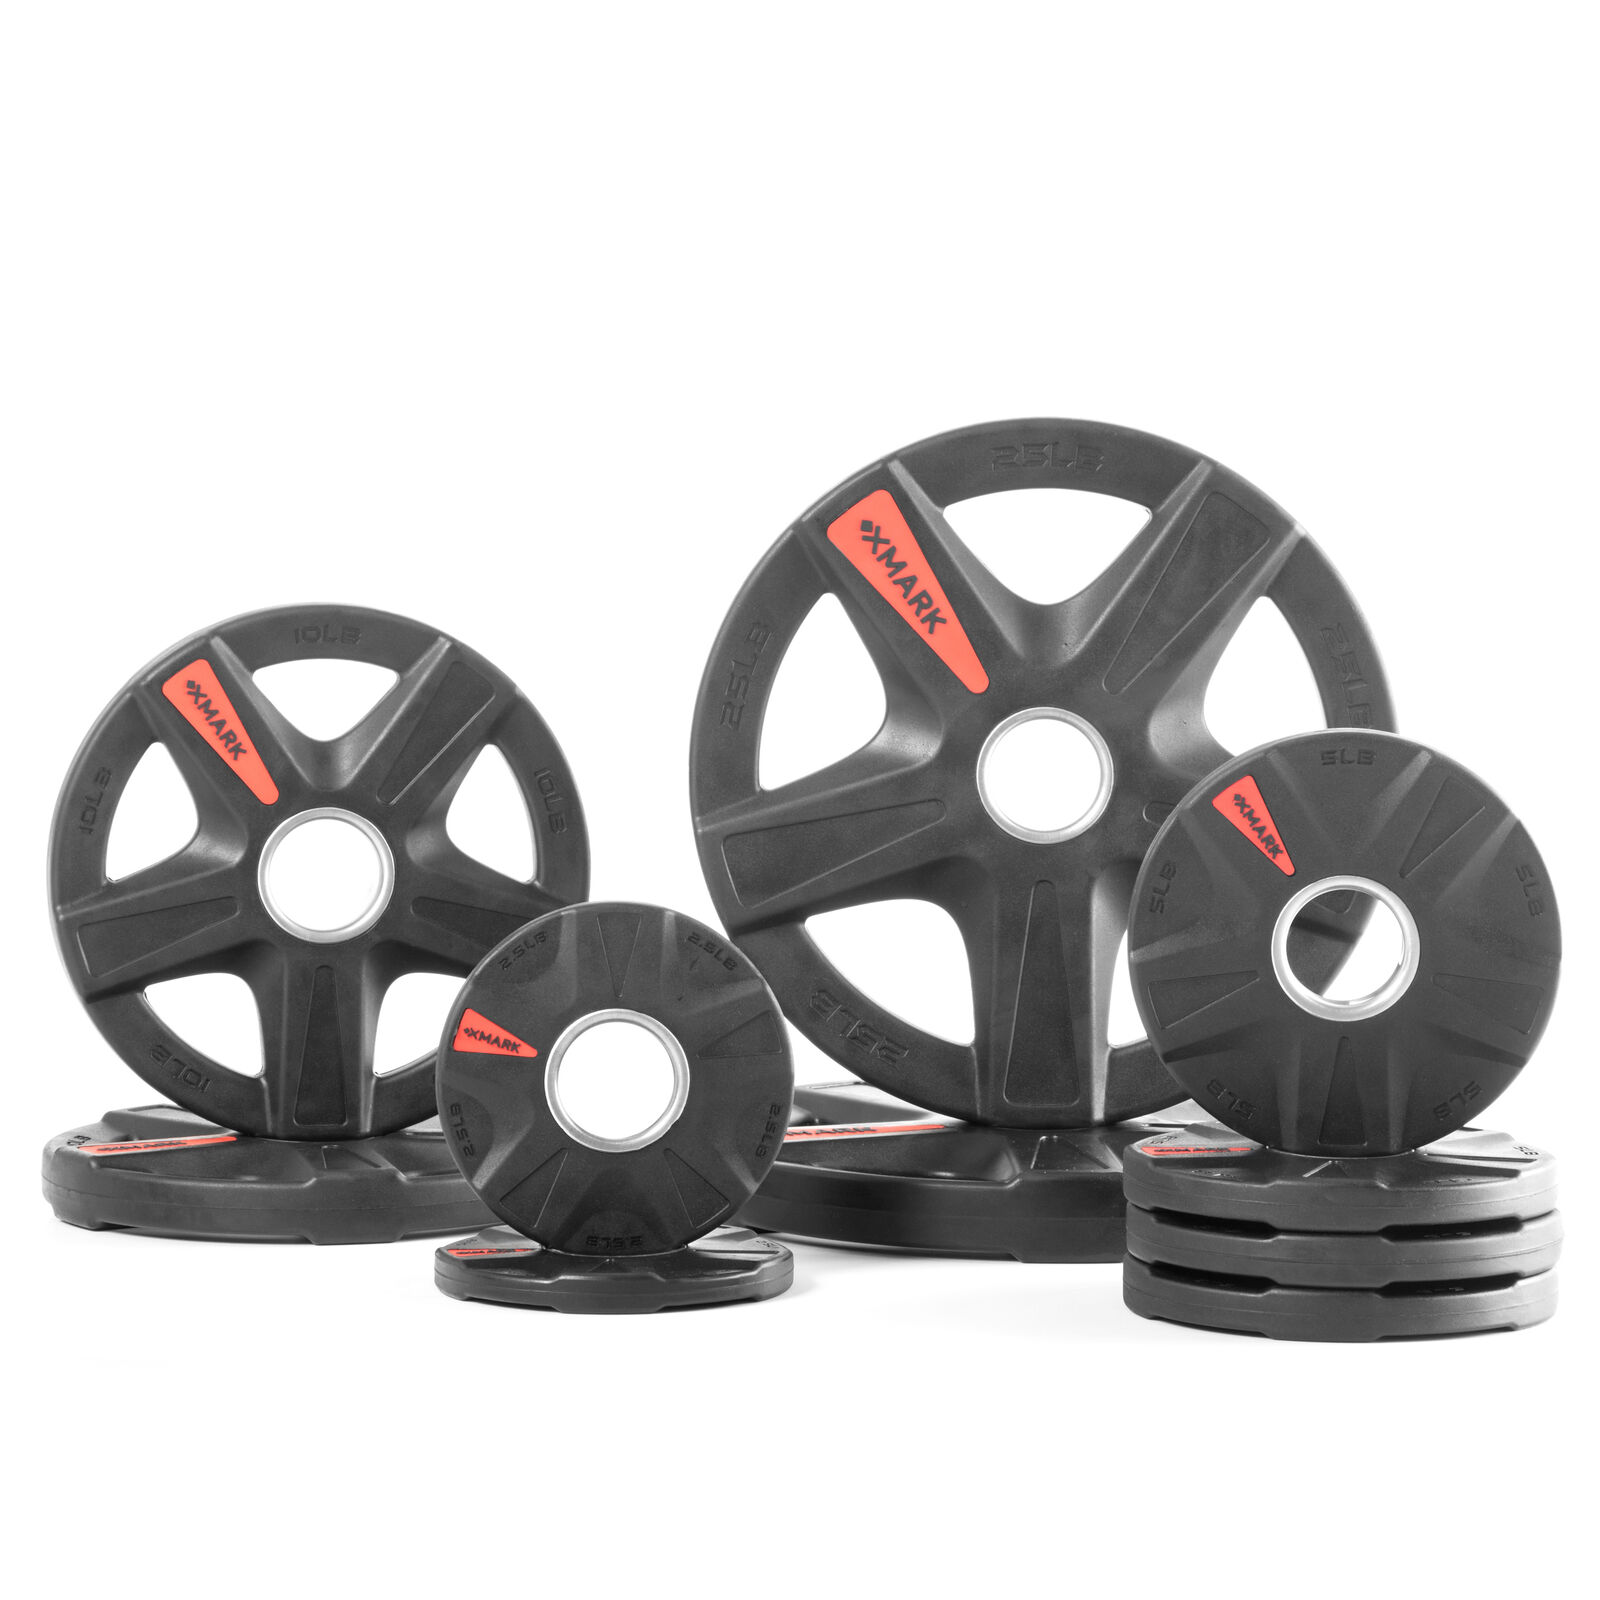 XMark's TEXAS STAR 95 lb. Select  Rubber Coated Olympic set XM-3389-BAL-95  convenient